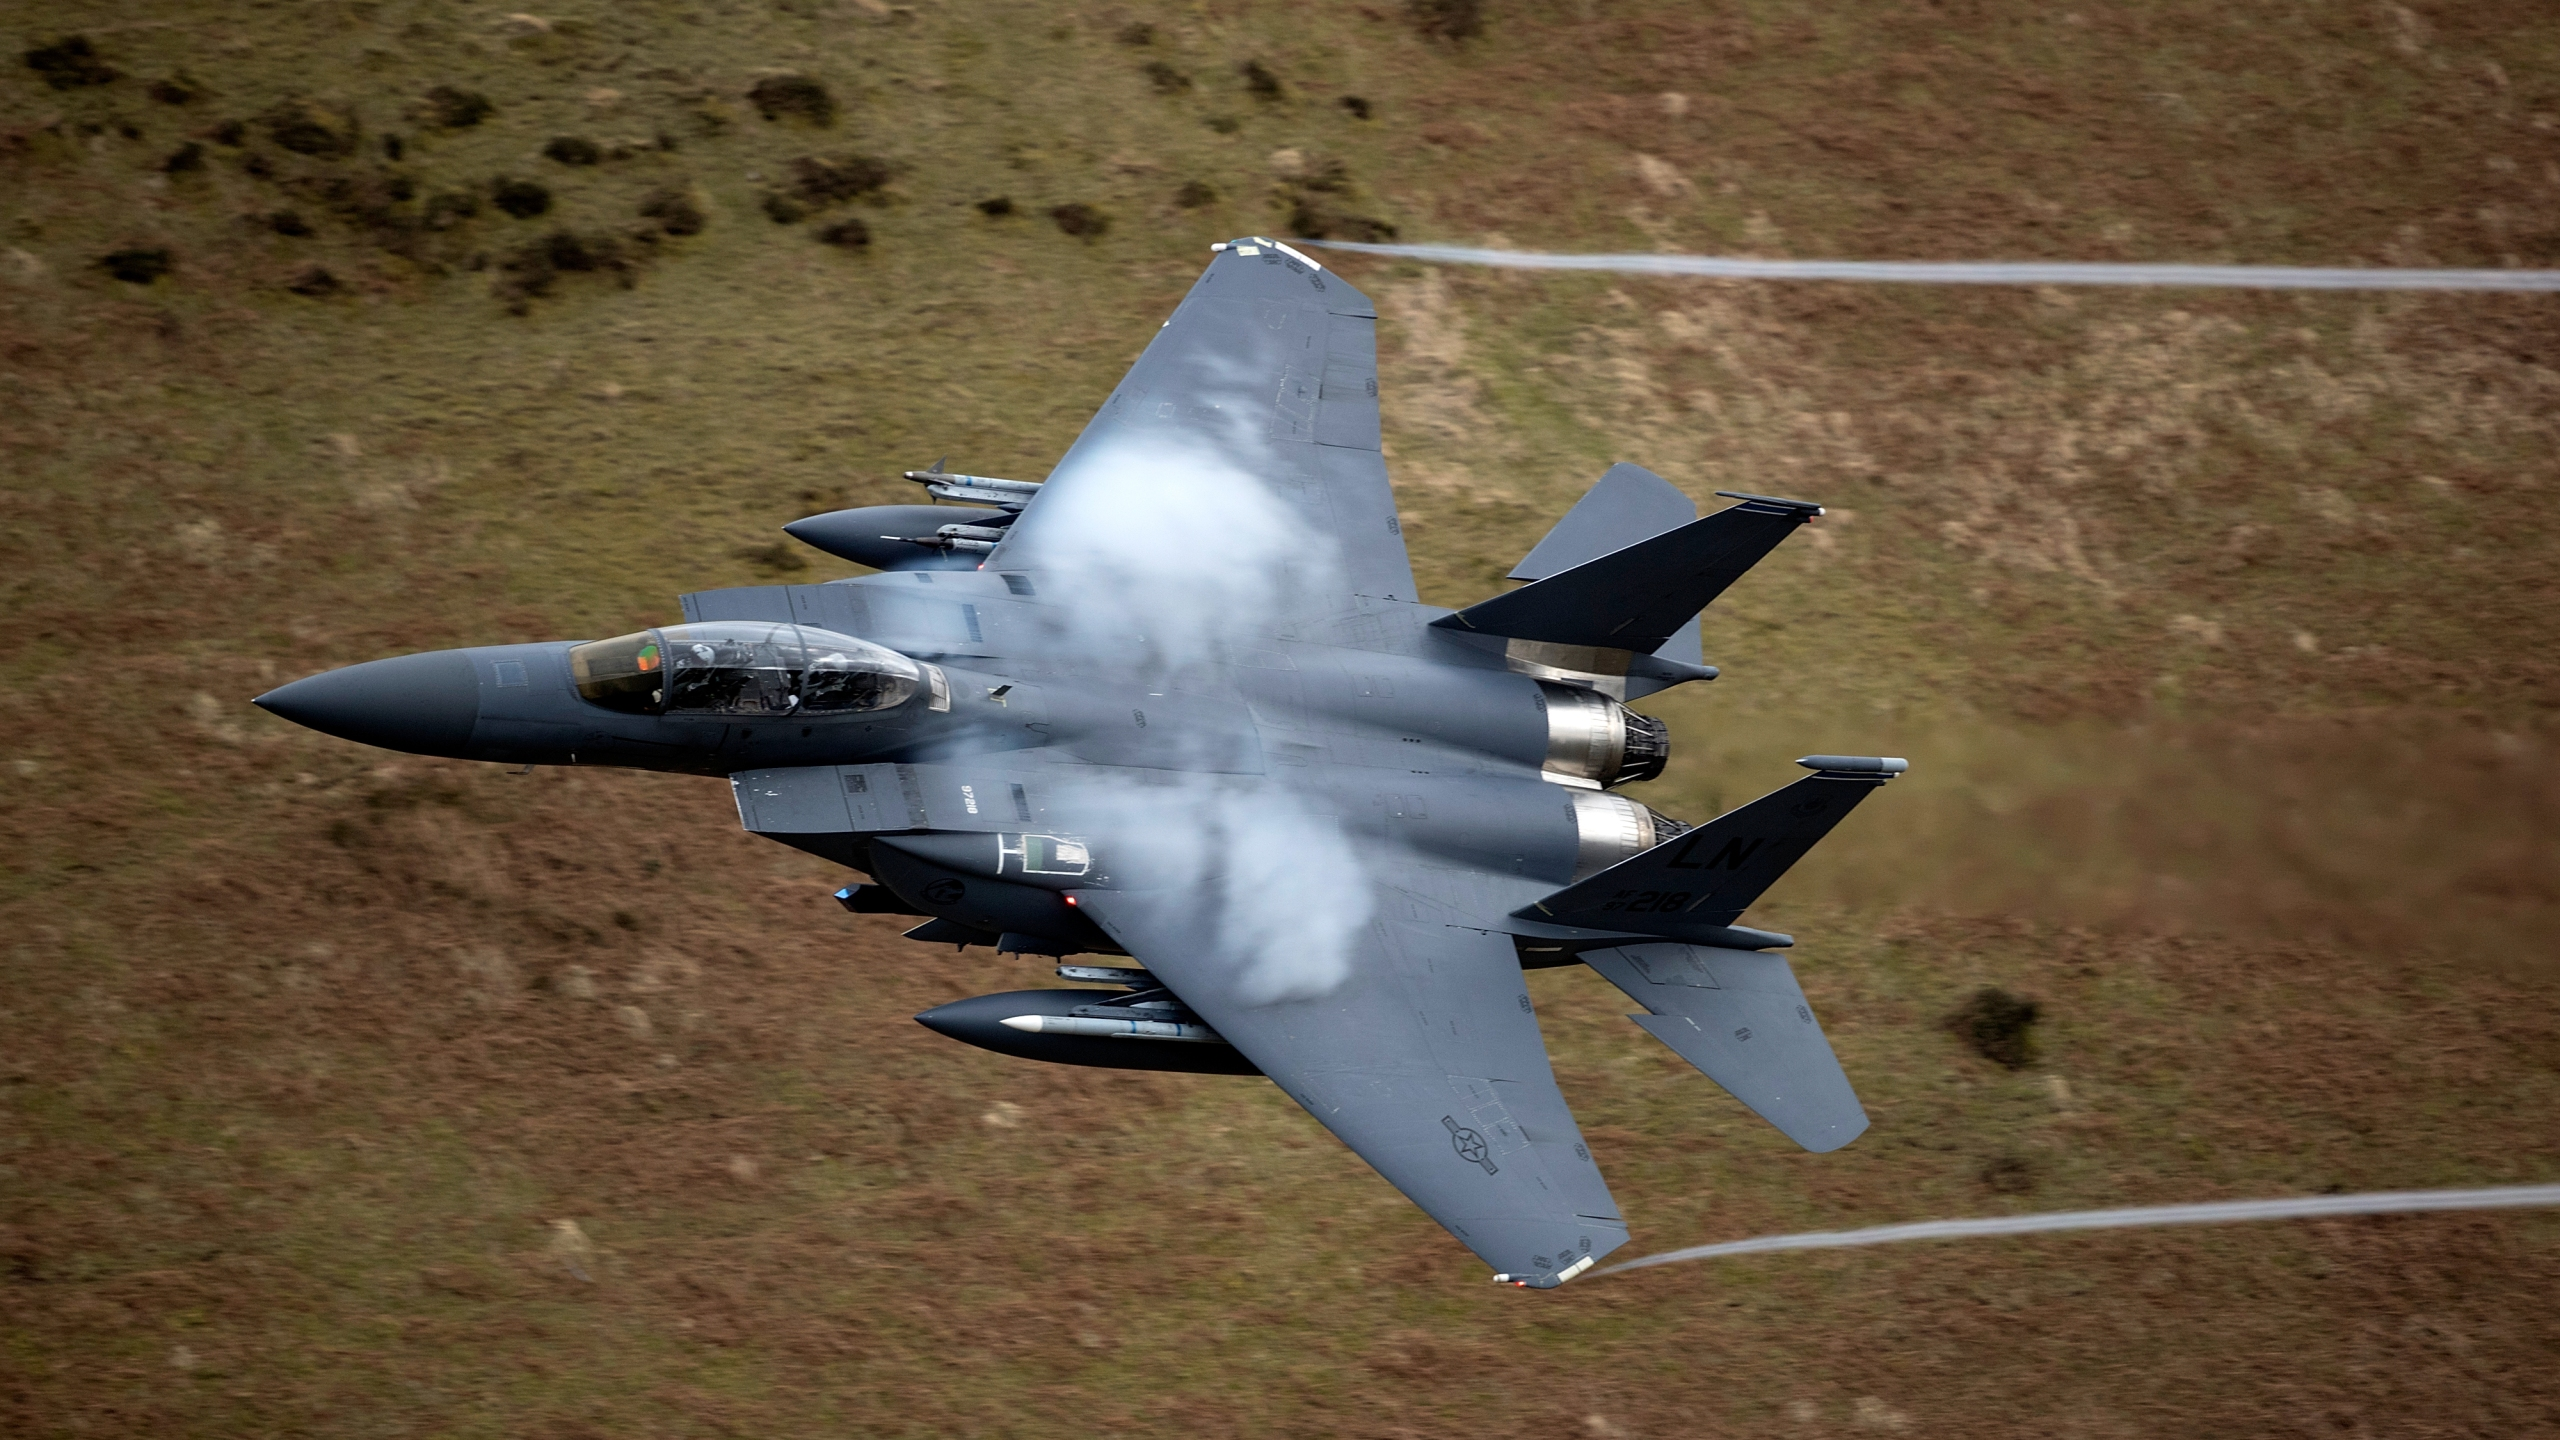 A United States Air Force F-15 fighter jet based at RAF Lakenheath speeds through the Dinas Pass, known in the aviation world as the Mach Loop on February 16, 2018 in Dolgellau, Wales. (Christopher Furlong/Getty Images)